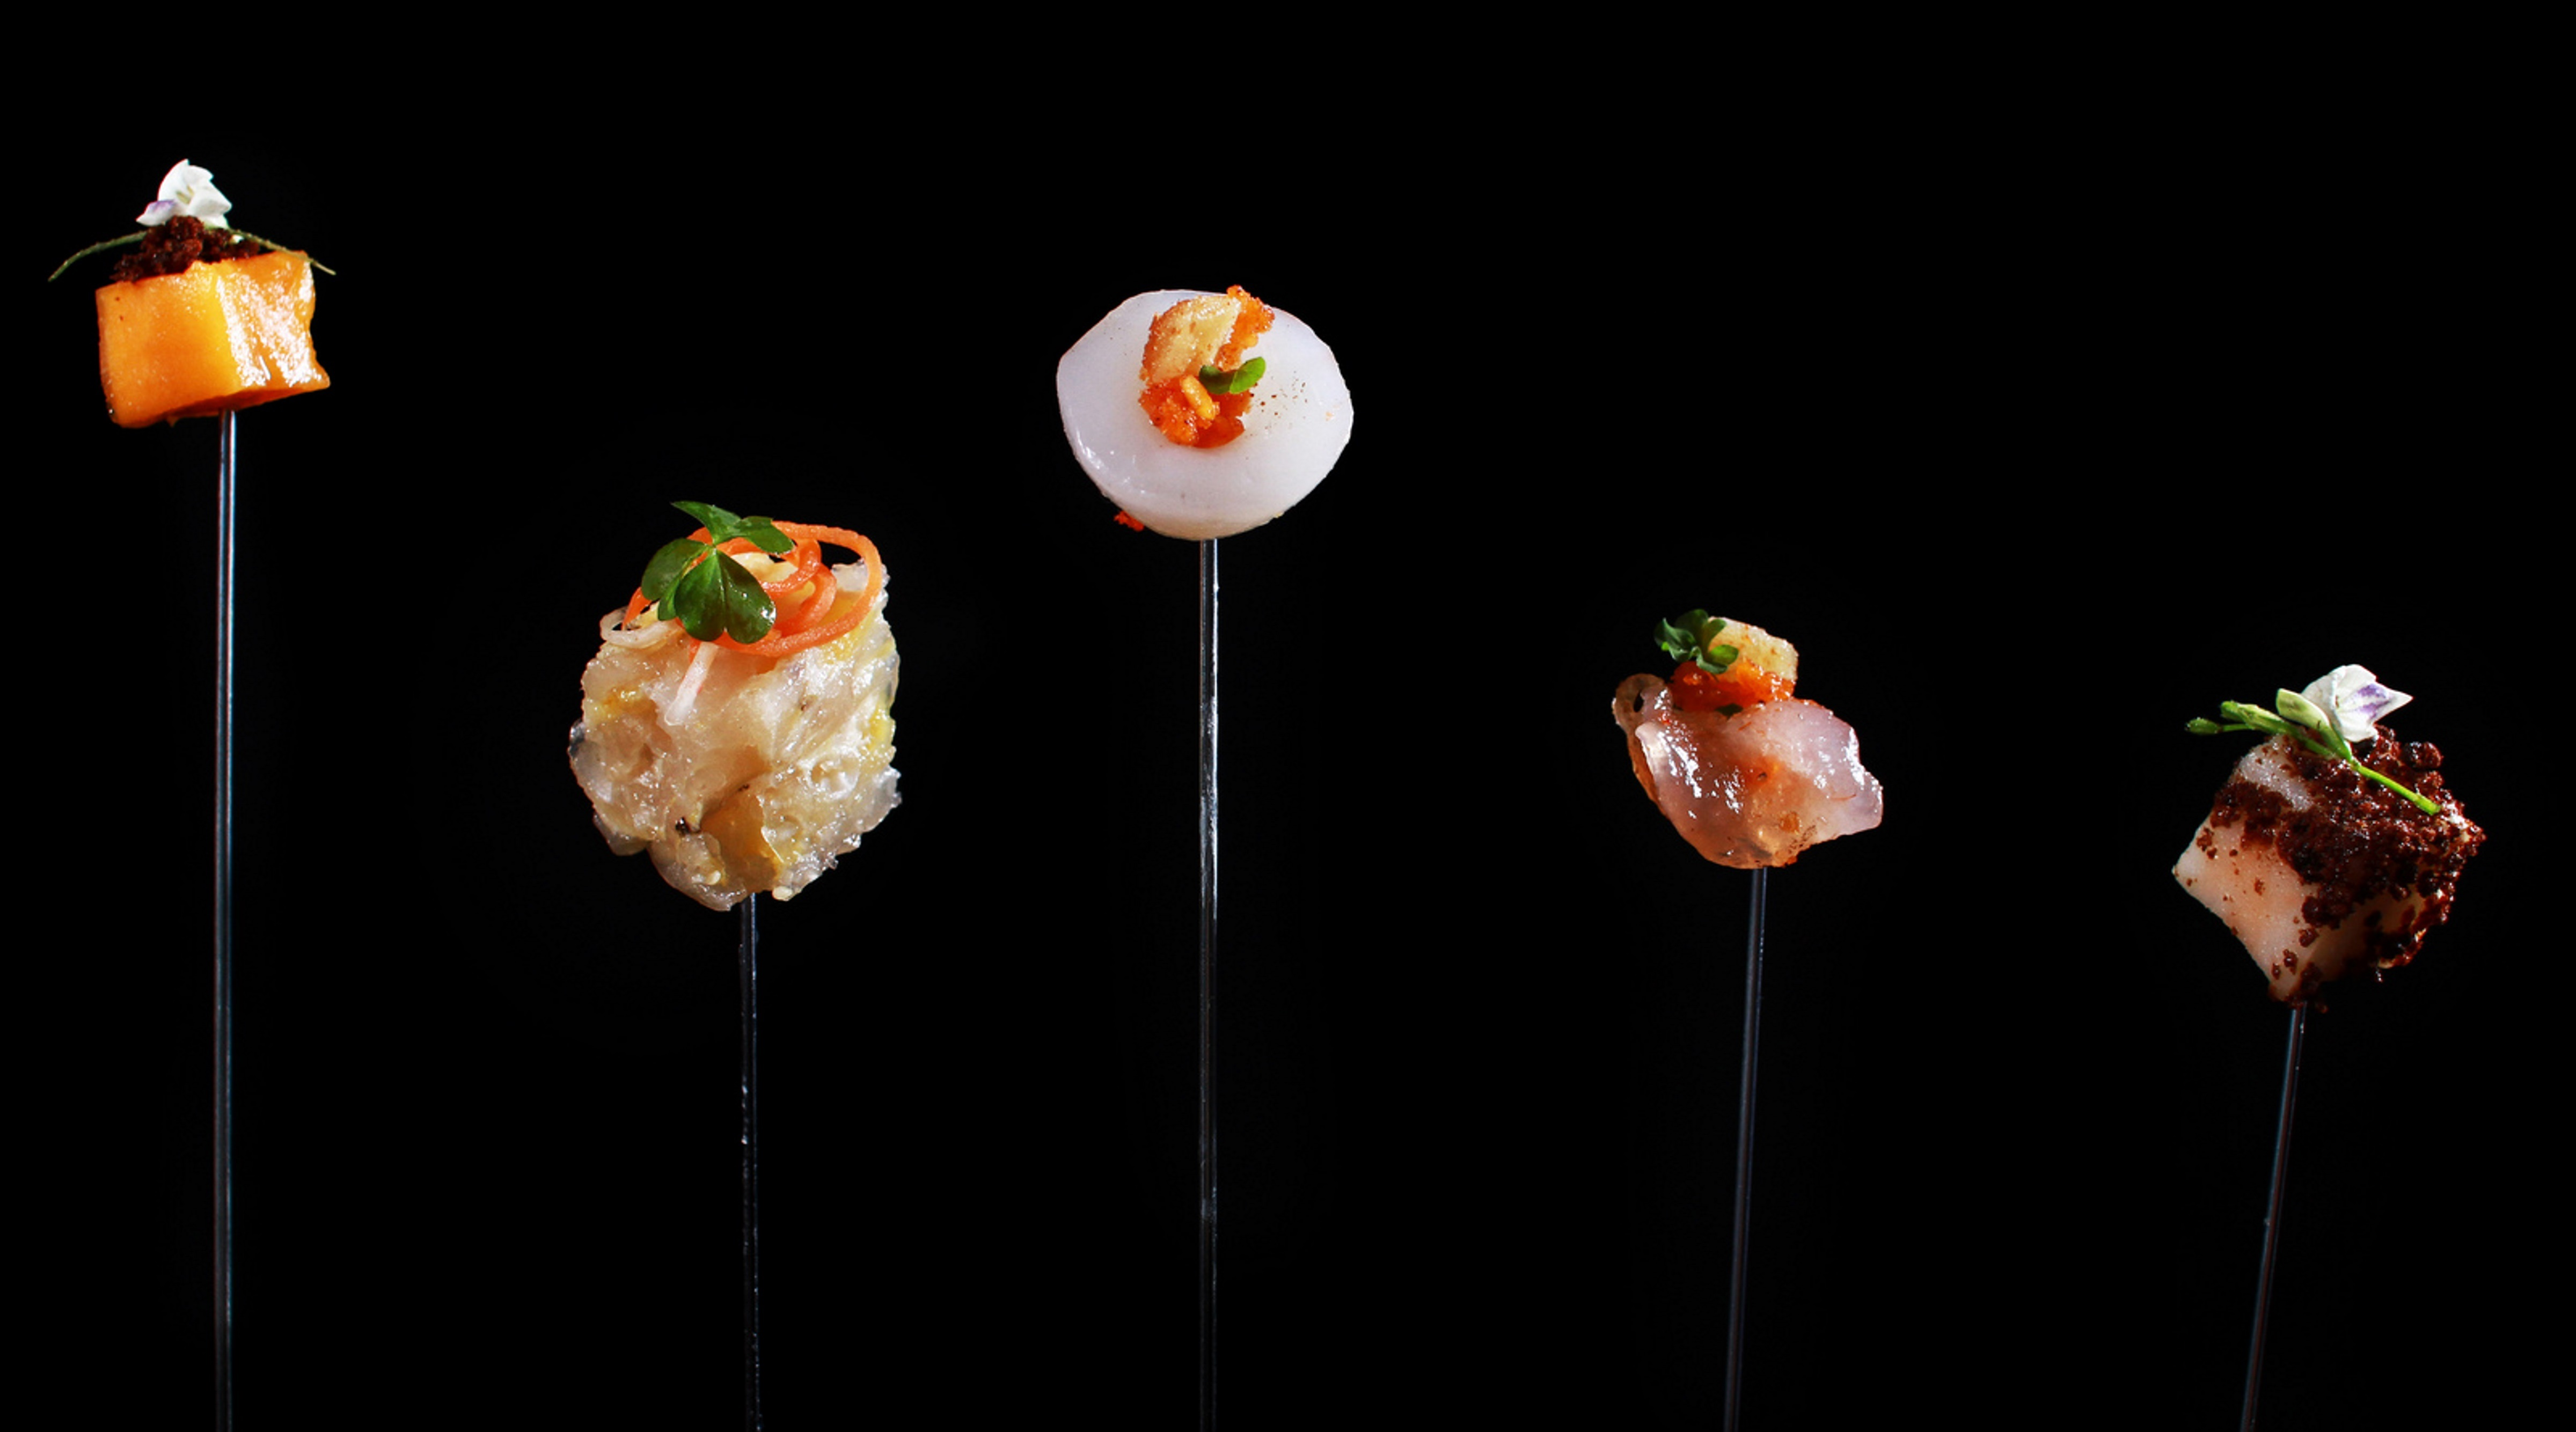 Food styling gains in popularity in Vietnam